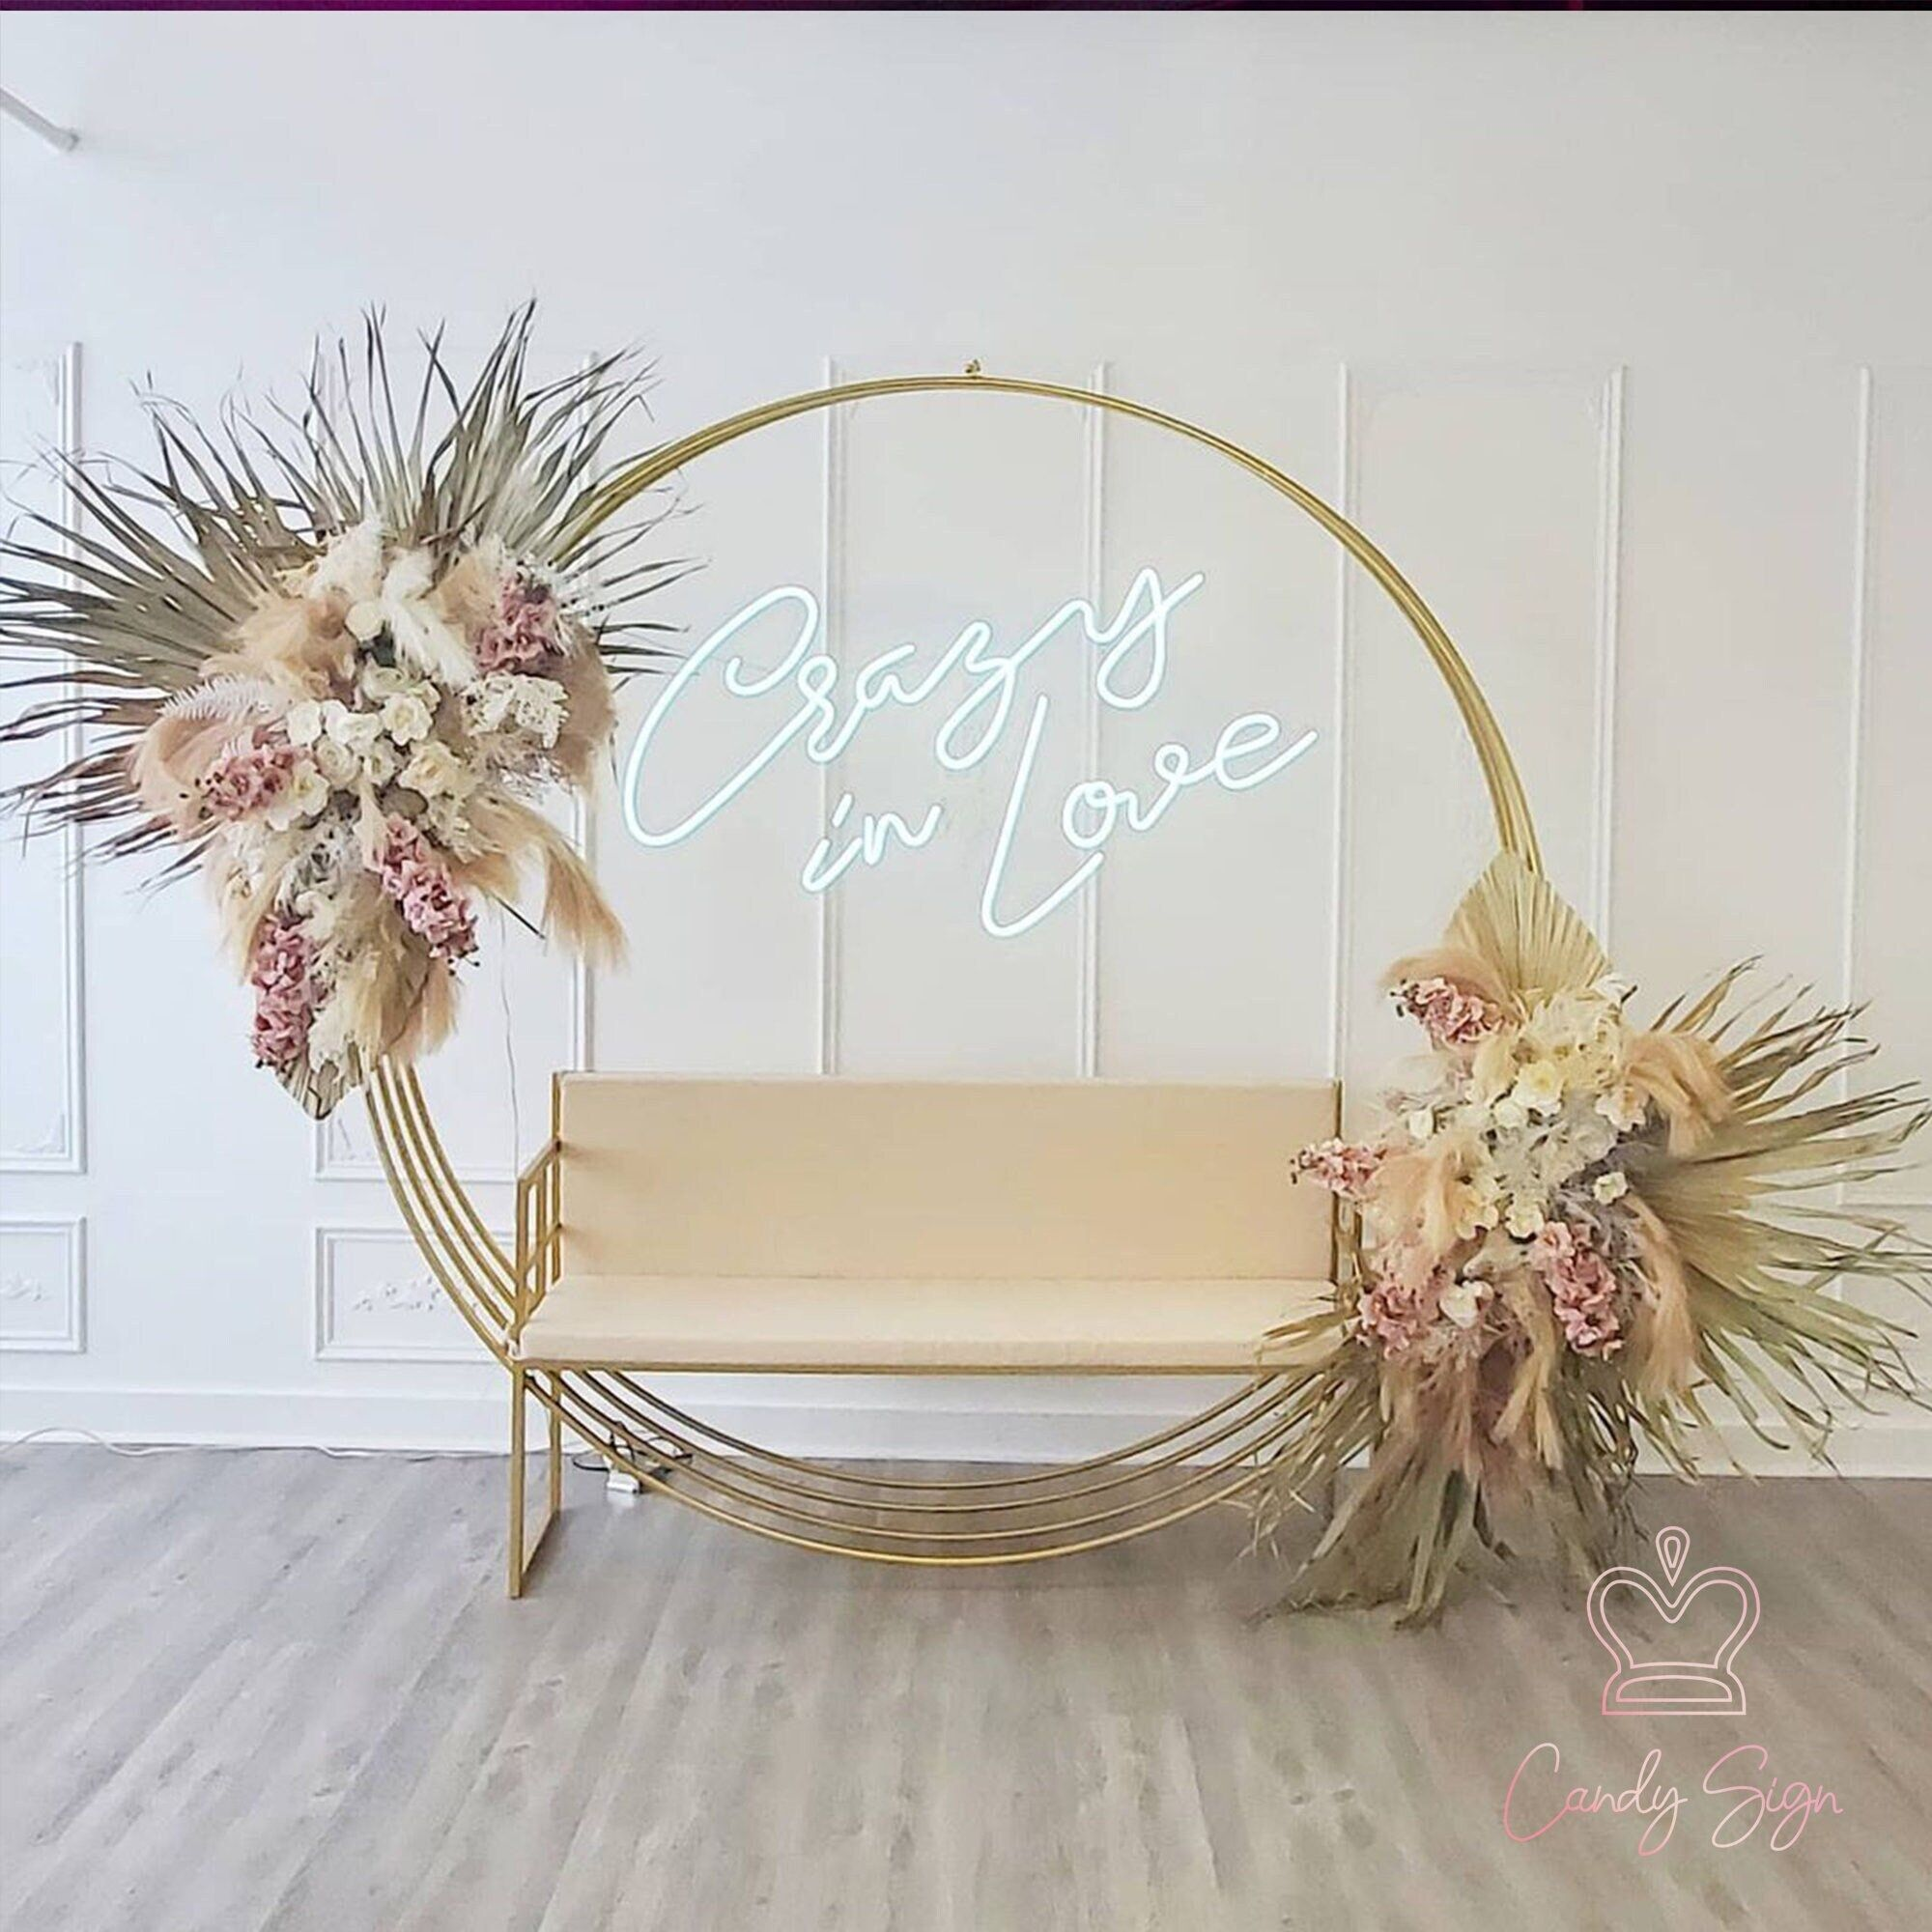 Neon sign name: Crazy In Love Size options : 30-240 cm (Custom size accepted) Color options : cool white, warm white, pink, red, ice blue, blue, yellow, green Occasion:Party,Store,Shop,Nails and Salon,Home and Yard decor,Birthday and Anniversary. Please use a ruler at the place where you'll hang your sign to determine the perfect size. 💡Package include: 1. Finished Neon Sign, with switch 2. Suitable power adapter and plug 3. Installation accessories like screws, chains etc. ✈️Free shipping worl